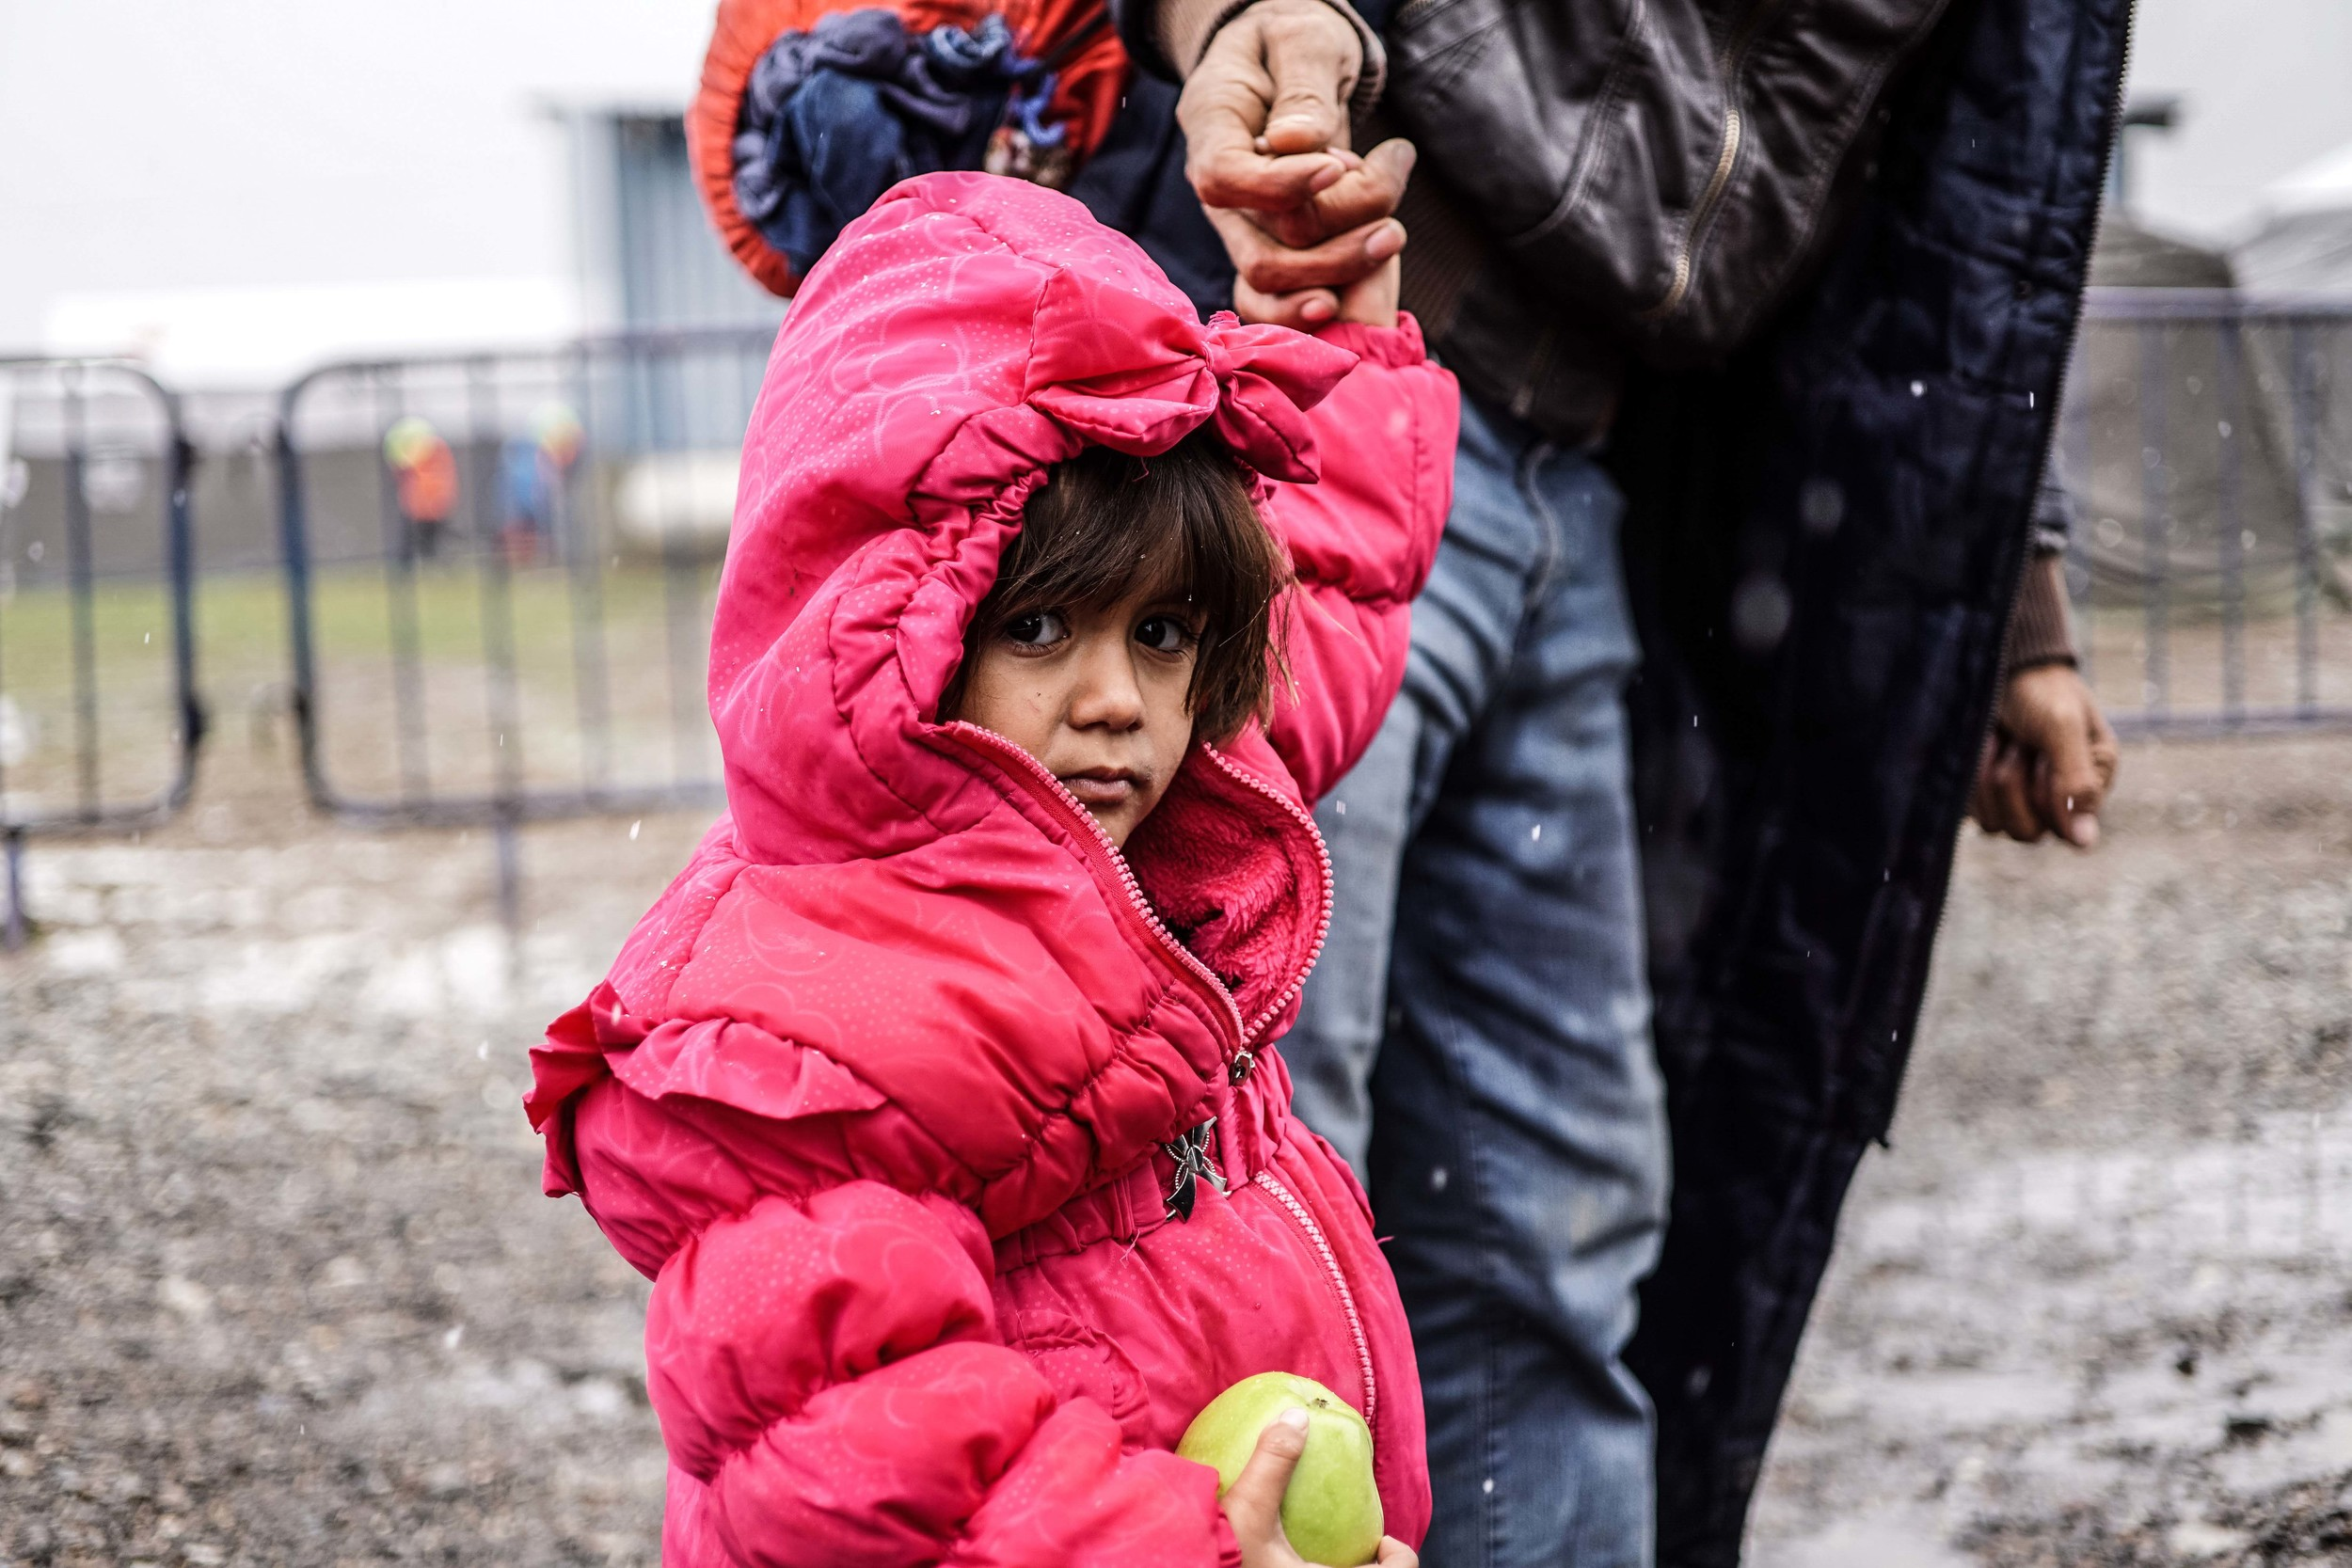 Syrian Refugee Crisis Croatia Slavonski Brod Winter Refugee Camp November 2015 4.jpg